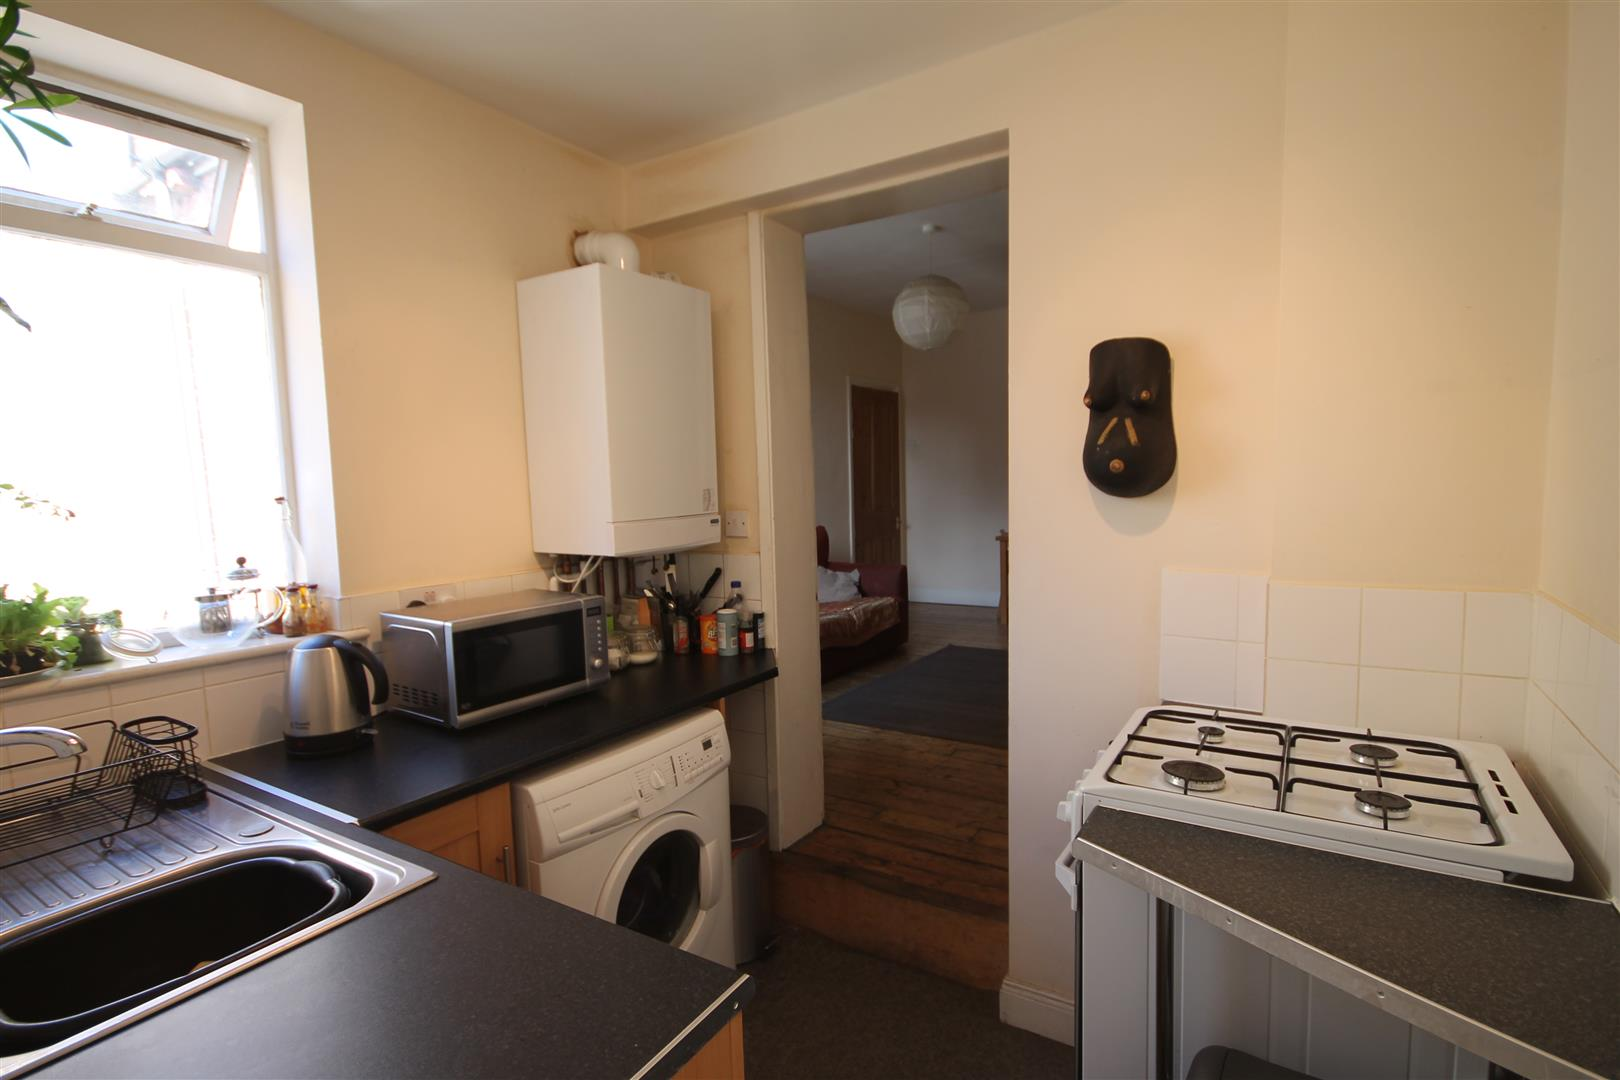 Station Road Newcastle UPon tyne, 3 Bedrooms  Apartment ,To Let